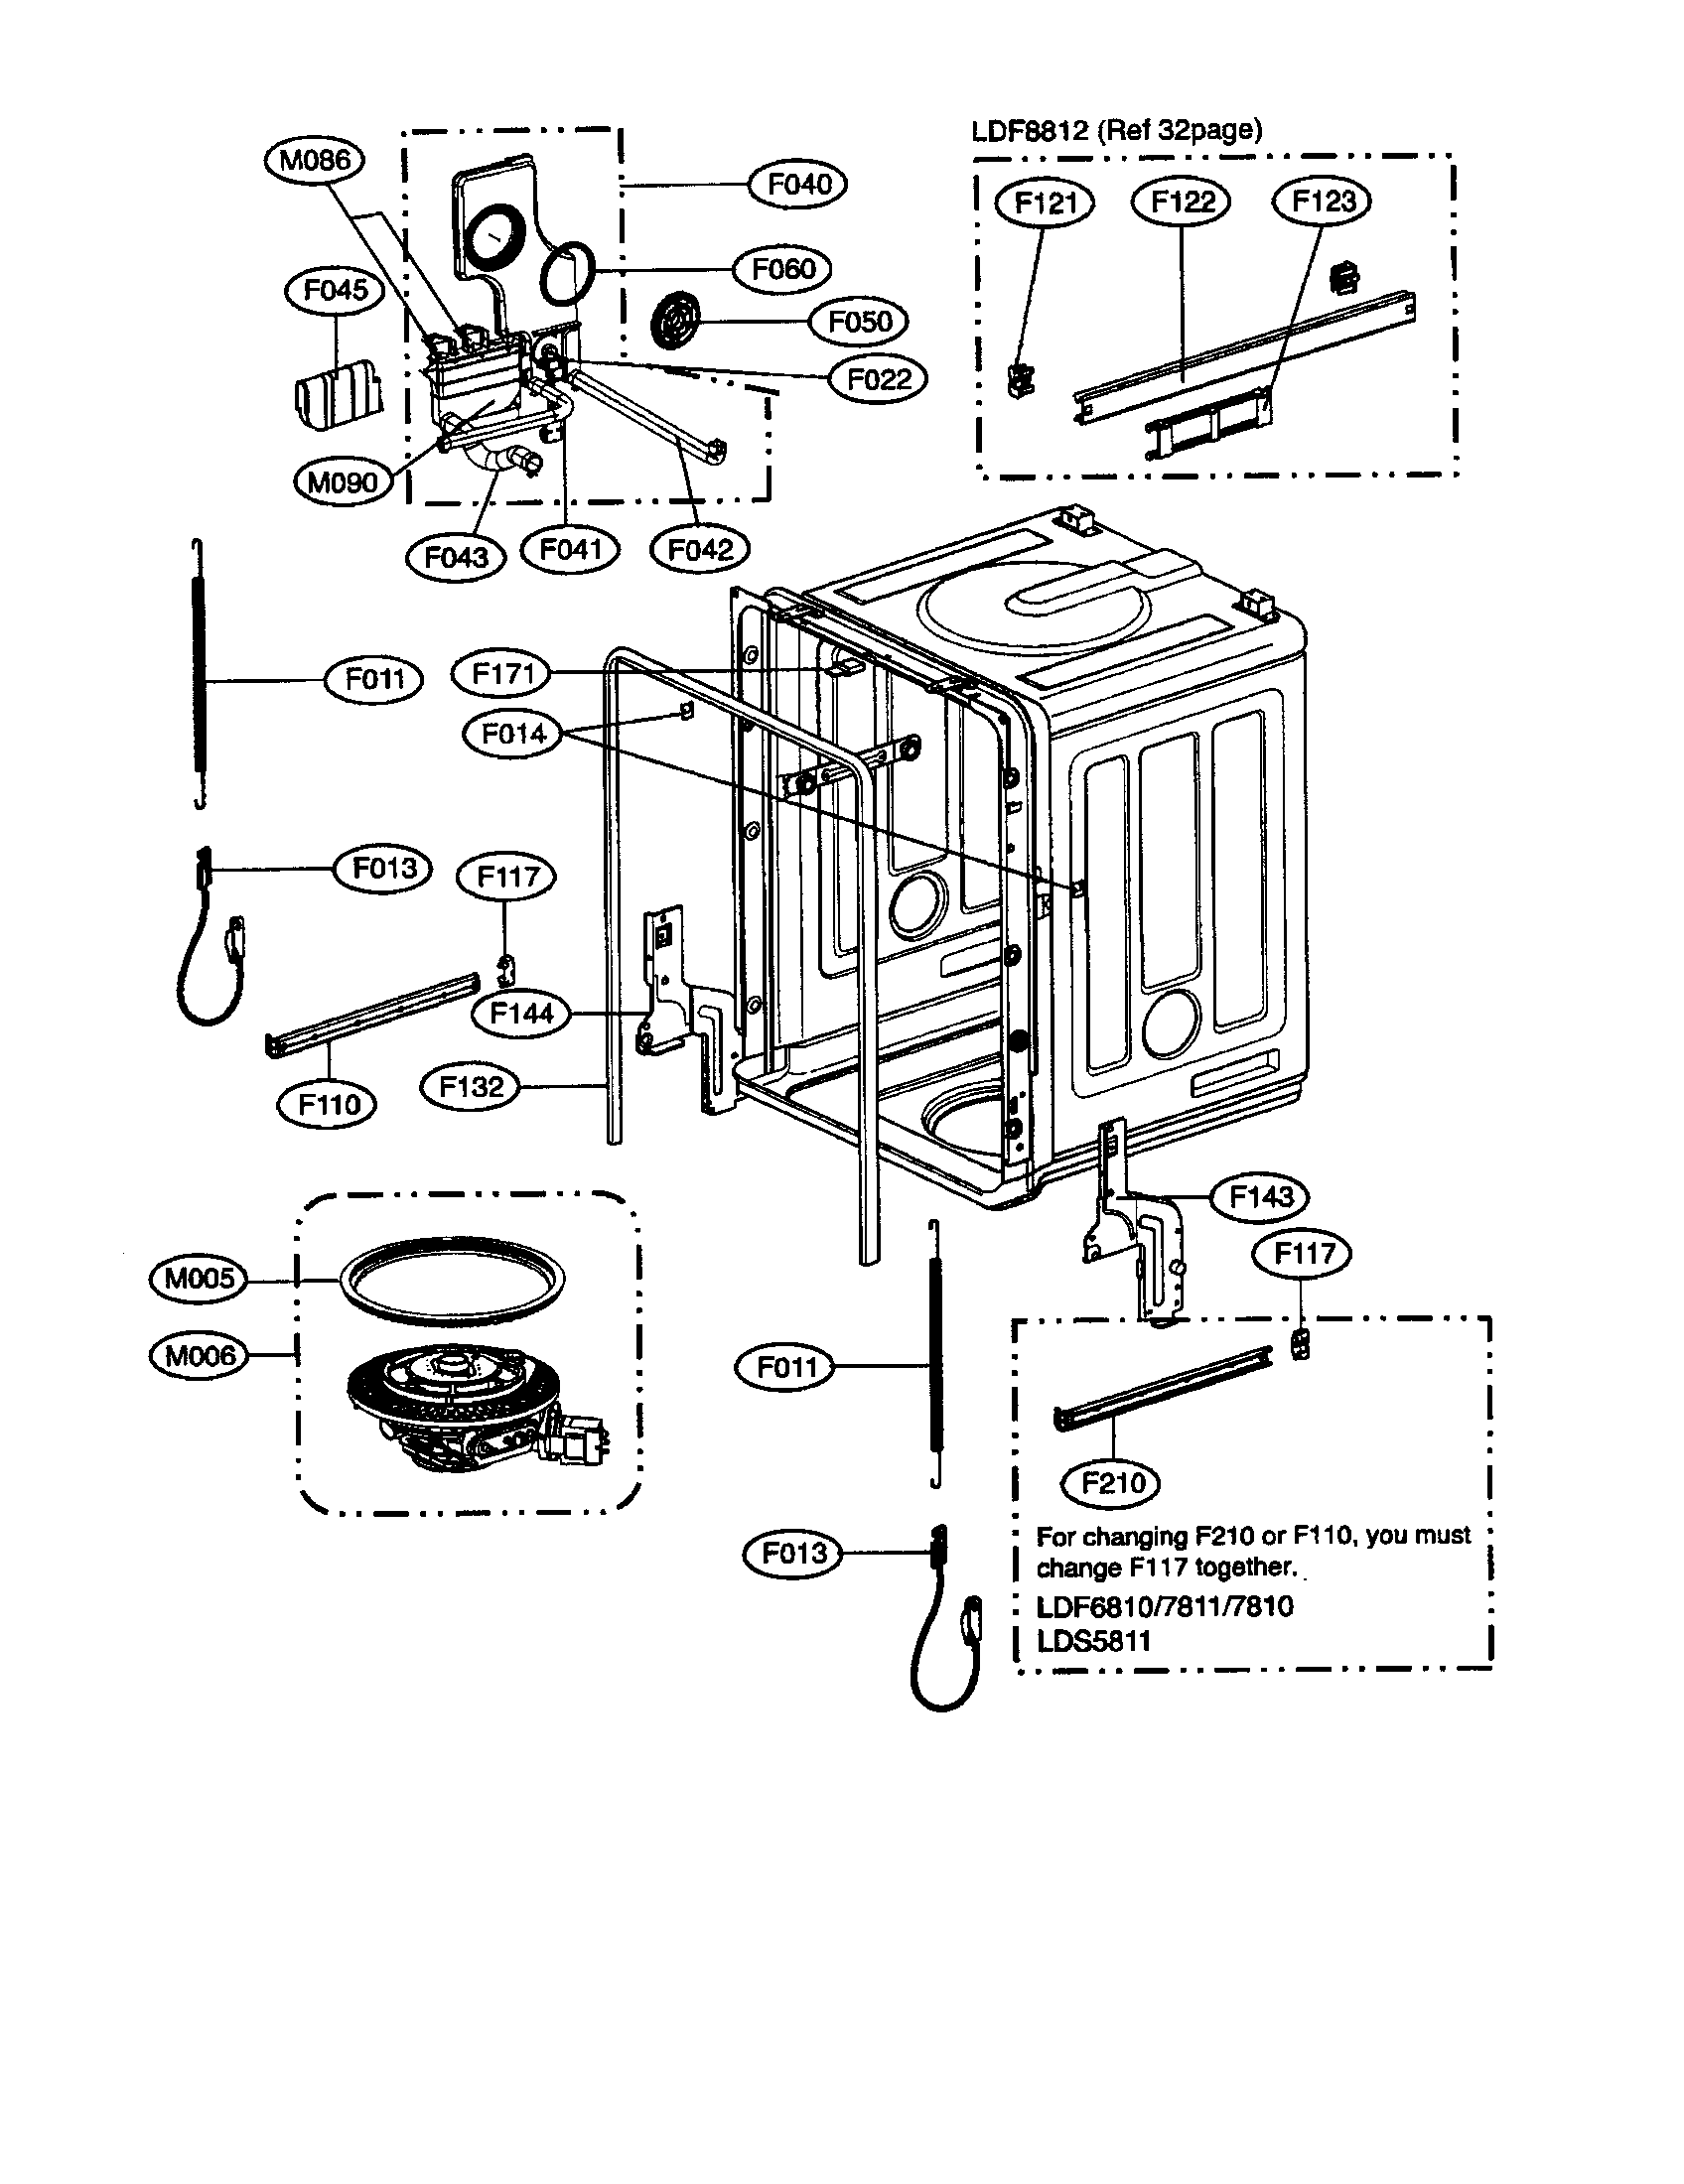 TUB Diagram & Parts List for Model LDF8812ST LG-Parts